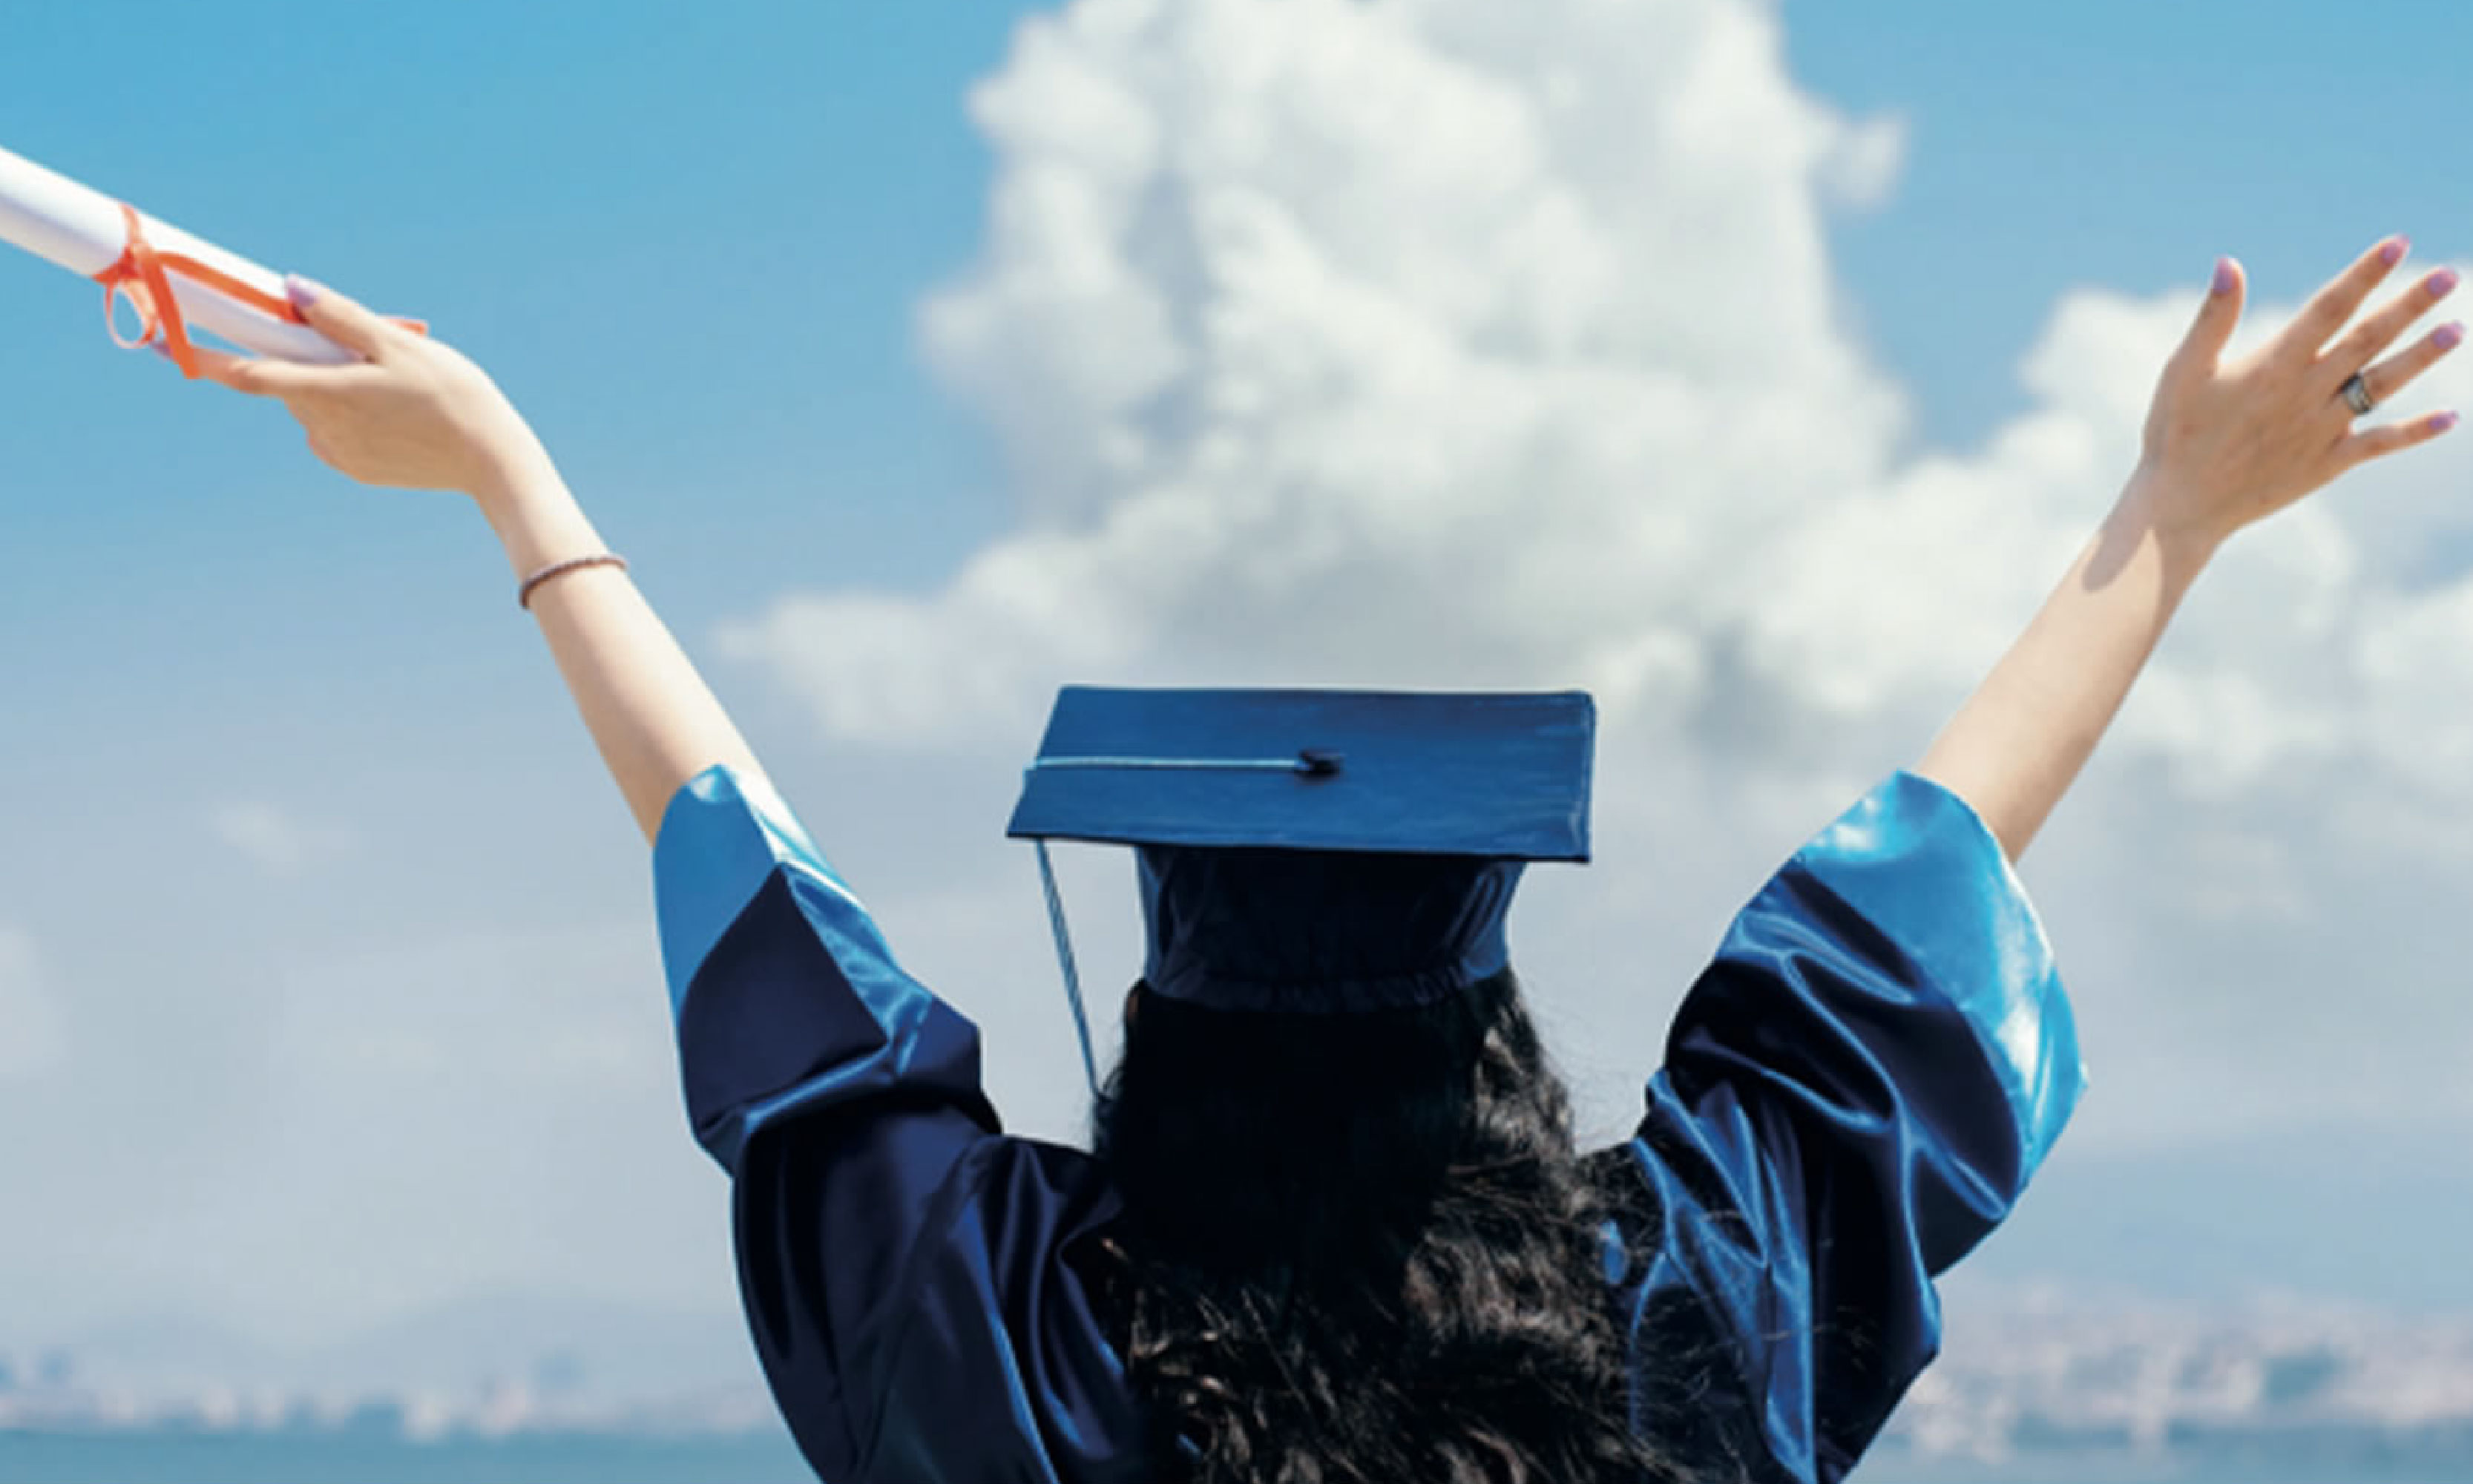 HDFC study abroad student loans